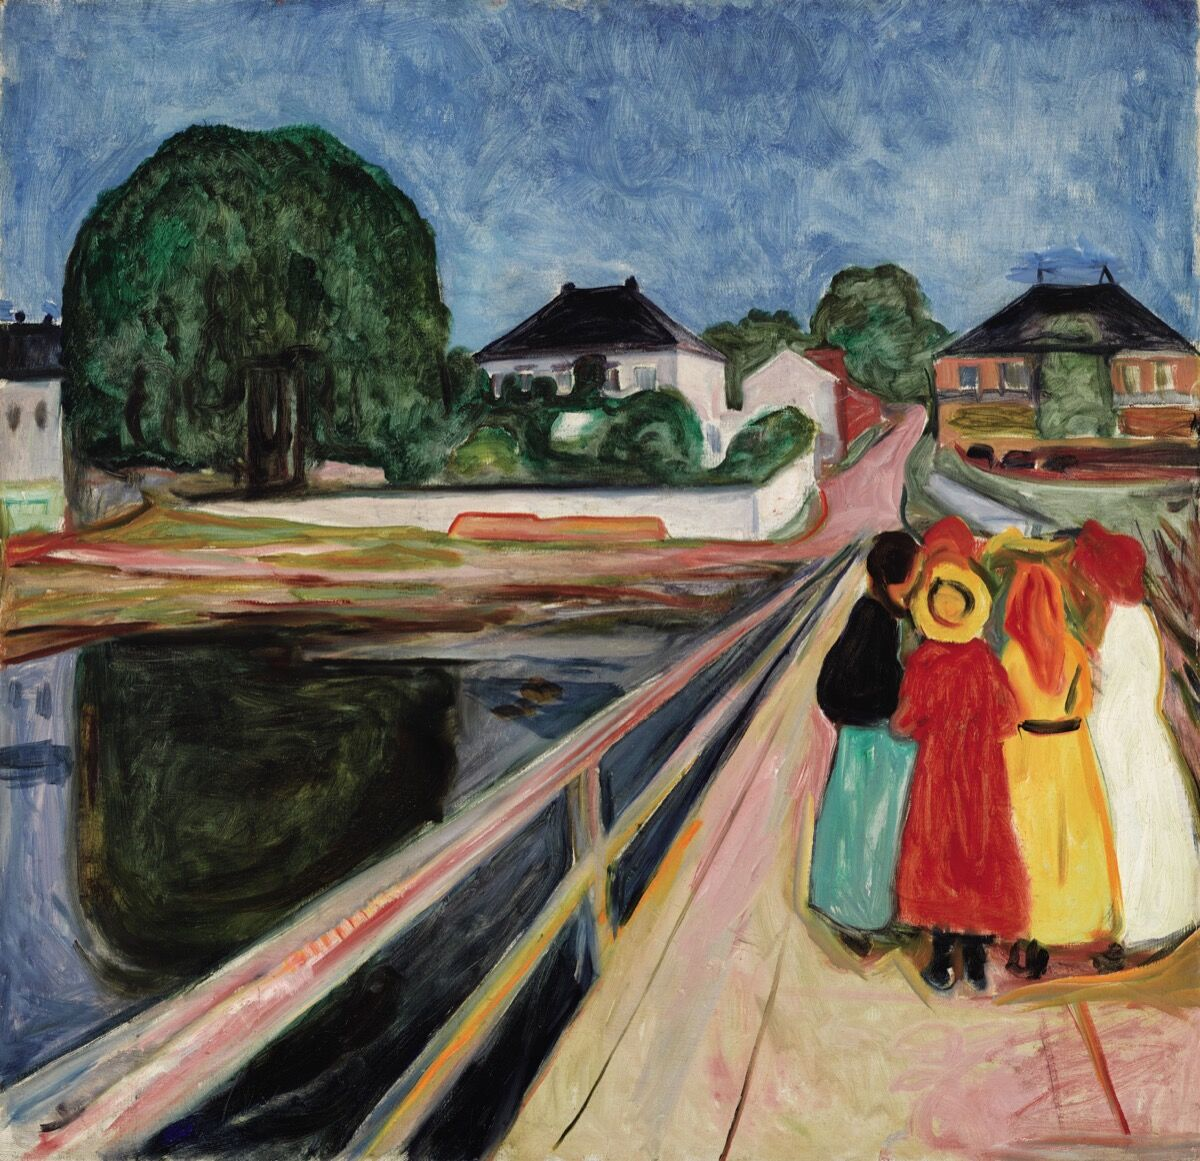 Edvard Munch, Pikene På Broen (Girls on the Bridge) (1902). Image courtesy of Sotheby's.